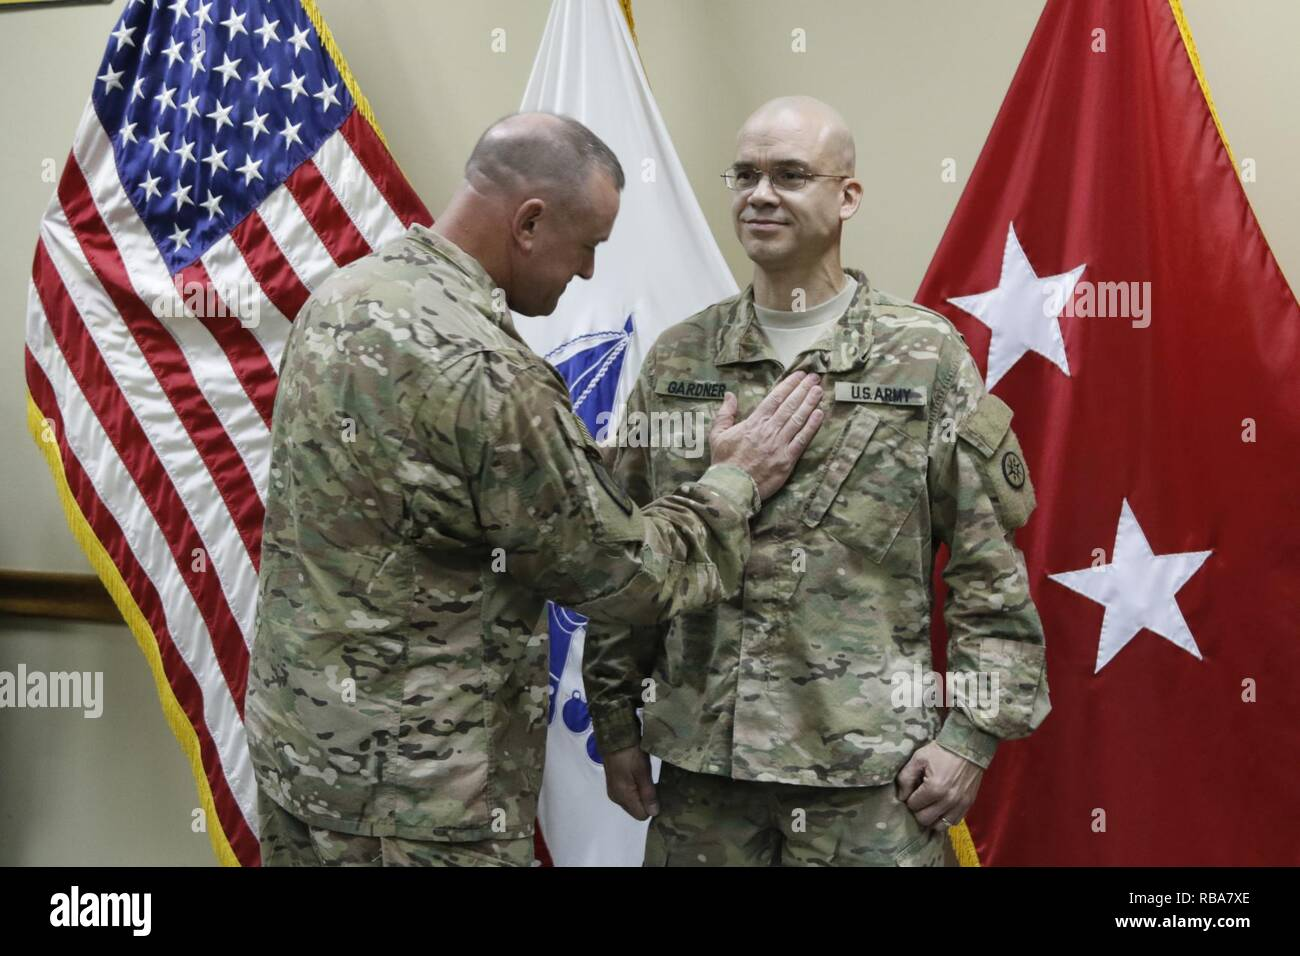 Brig. Gen. Robert D. Harter, 316th Sustainment Command (Expeditionary) commanding general, places the rank of Chief Warrant Officer 4 on Richard Gardner during a promotion ceremony at Camp Arifjan, Kuwait, Dec. 31, 2016. - Stock Image